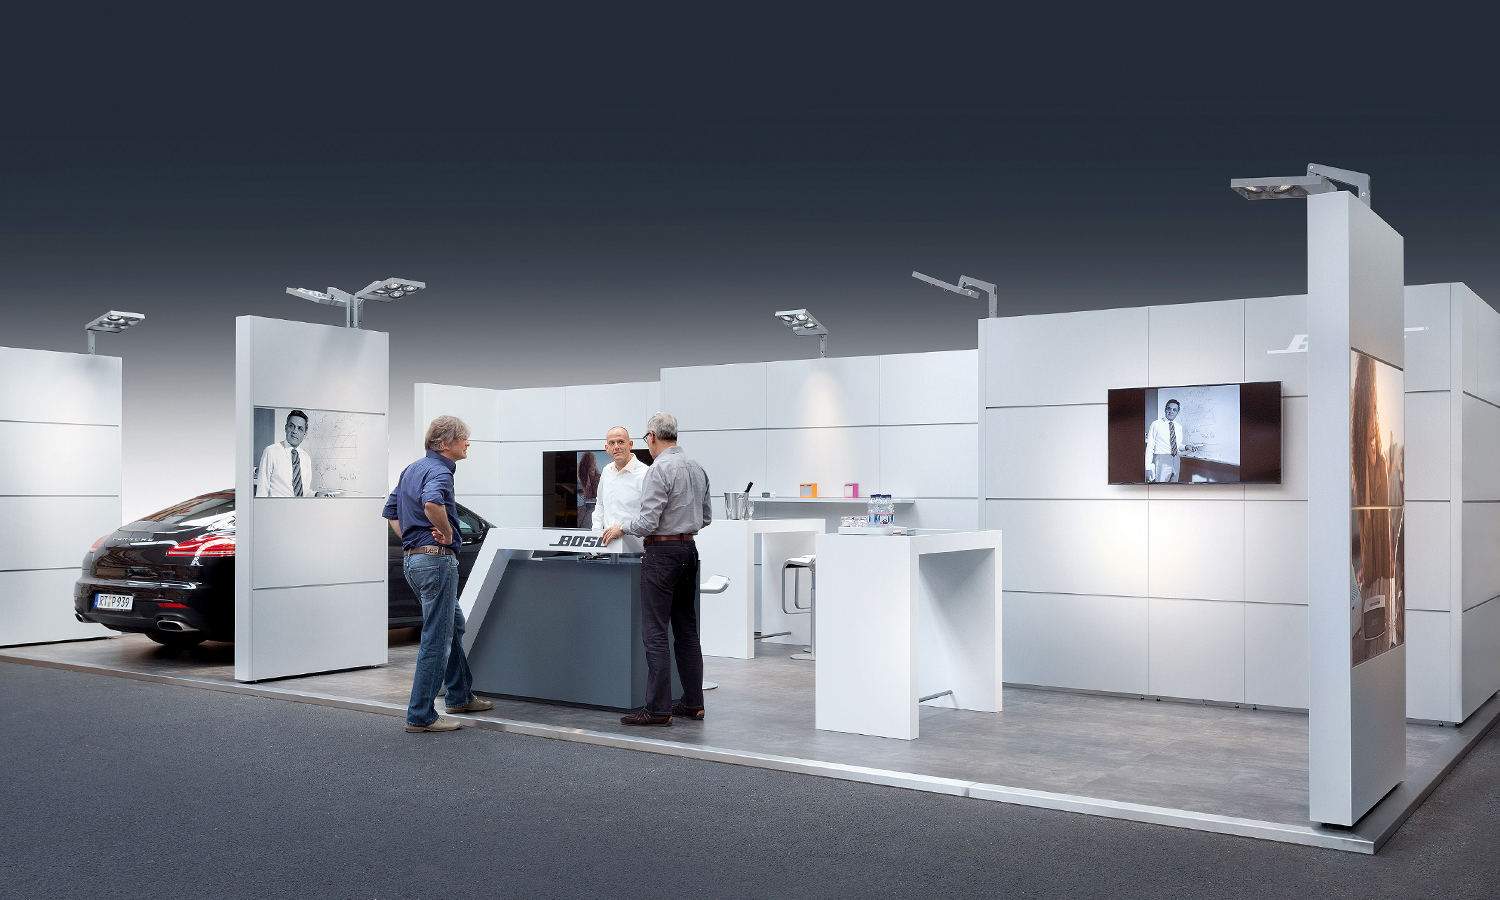 Bose Messestand mit Mila-wall Wandmodulen